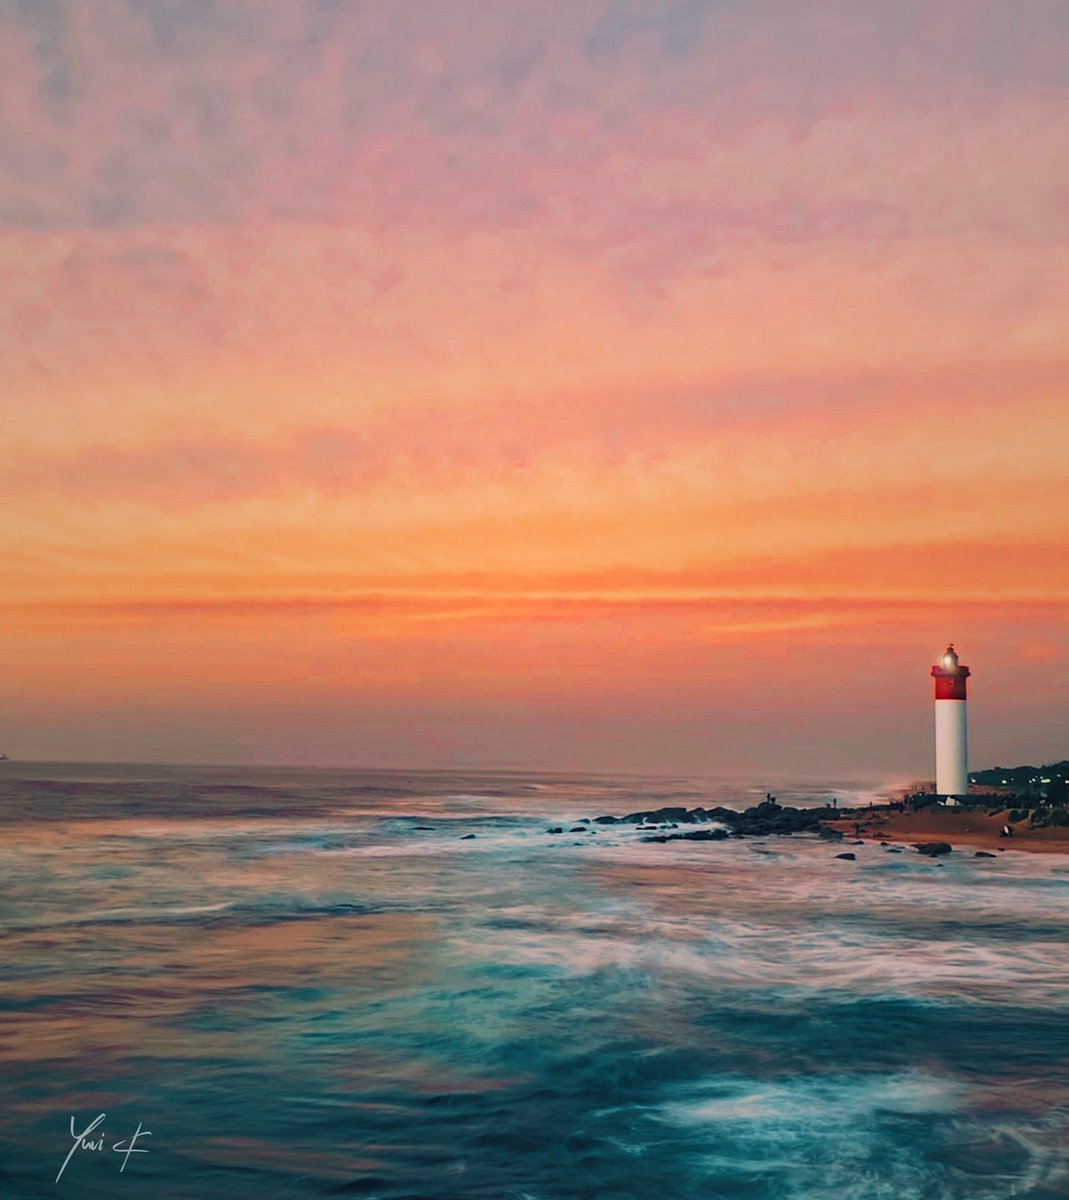 Durban You Beauty 😍 The lighthouse revamp is finally completed 👌🏼  #Umhlanga #Durban #Sunrise #YuviK https://t.co/OrXqzCILXm